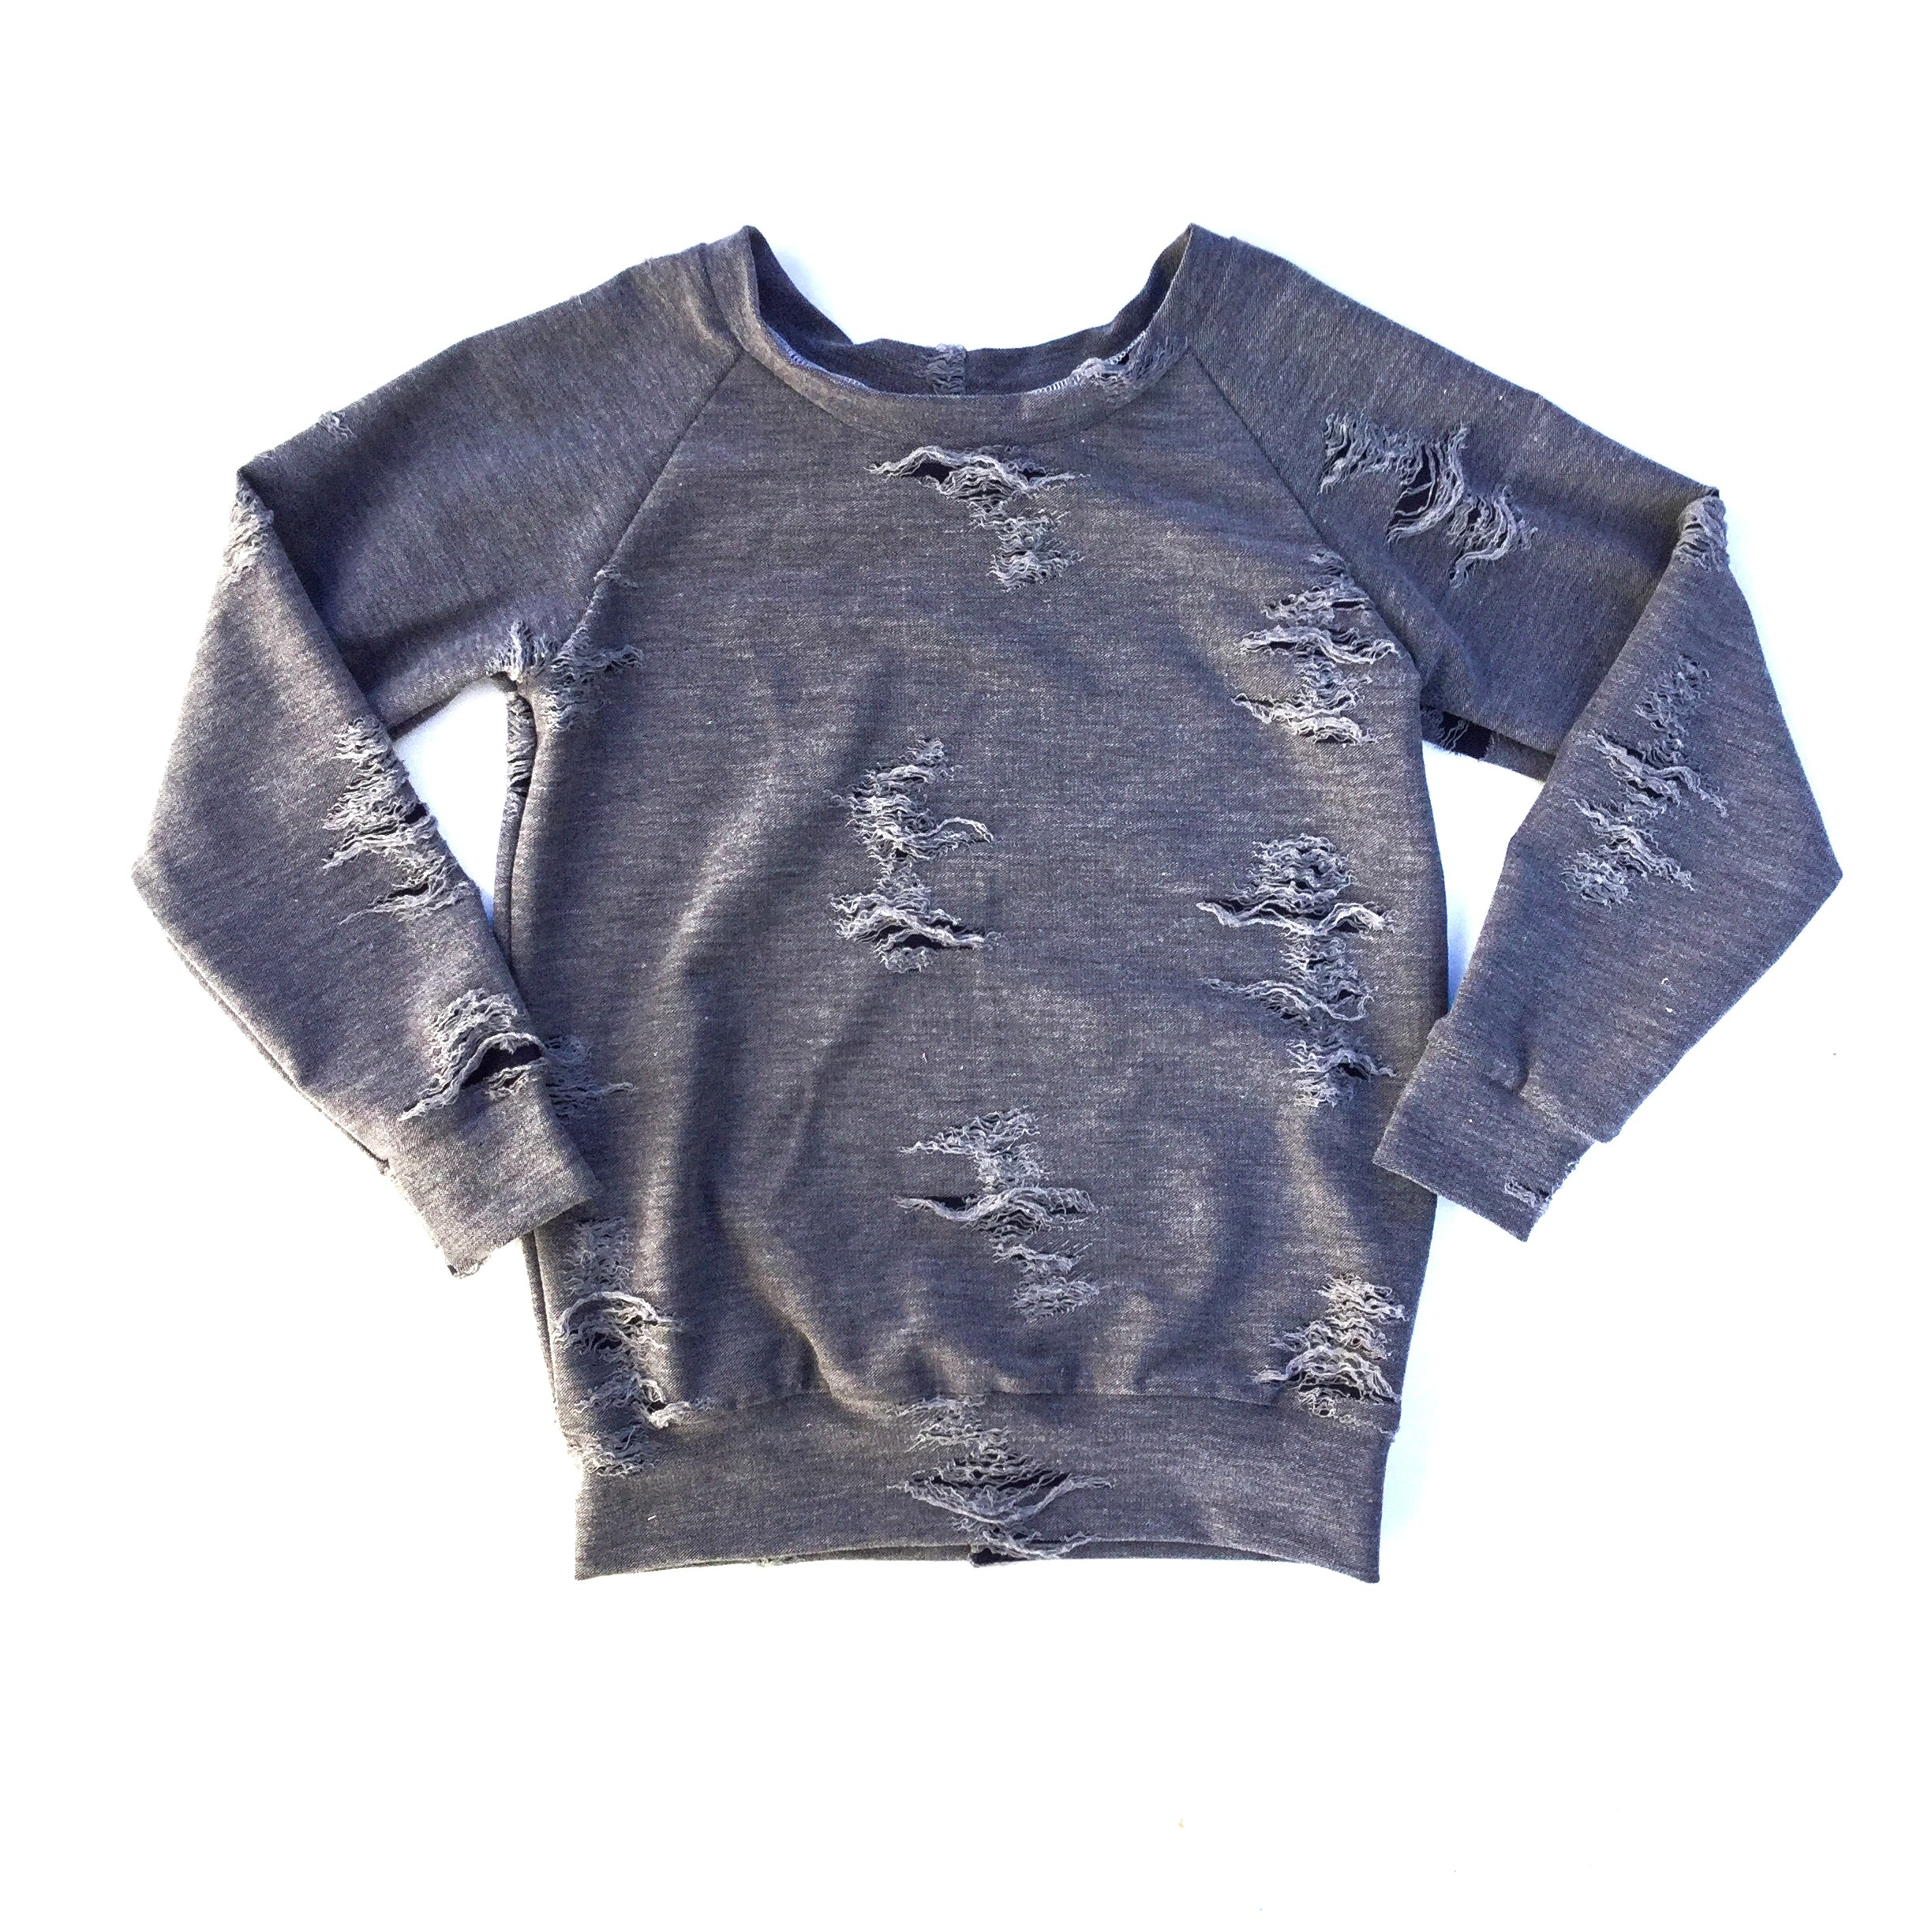 handmade toddler sweater trendy edgy distressed tops street wear for toddlers